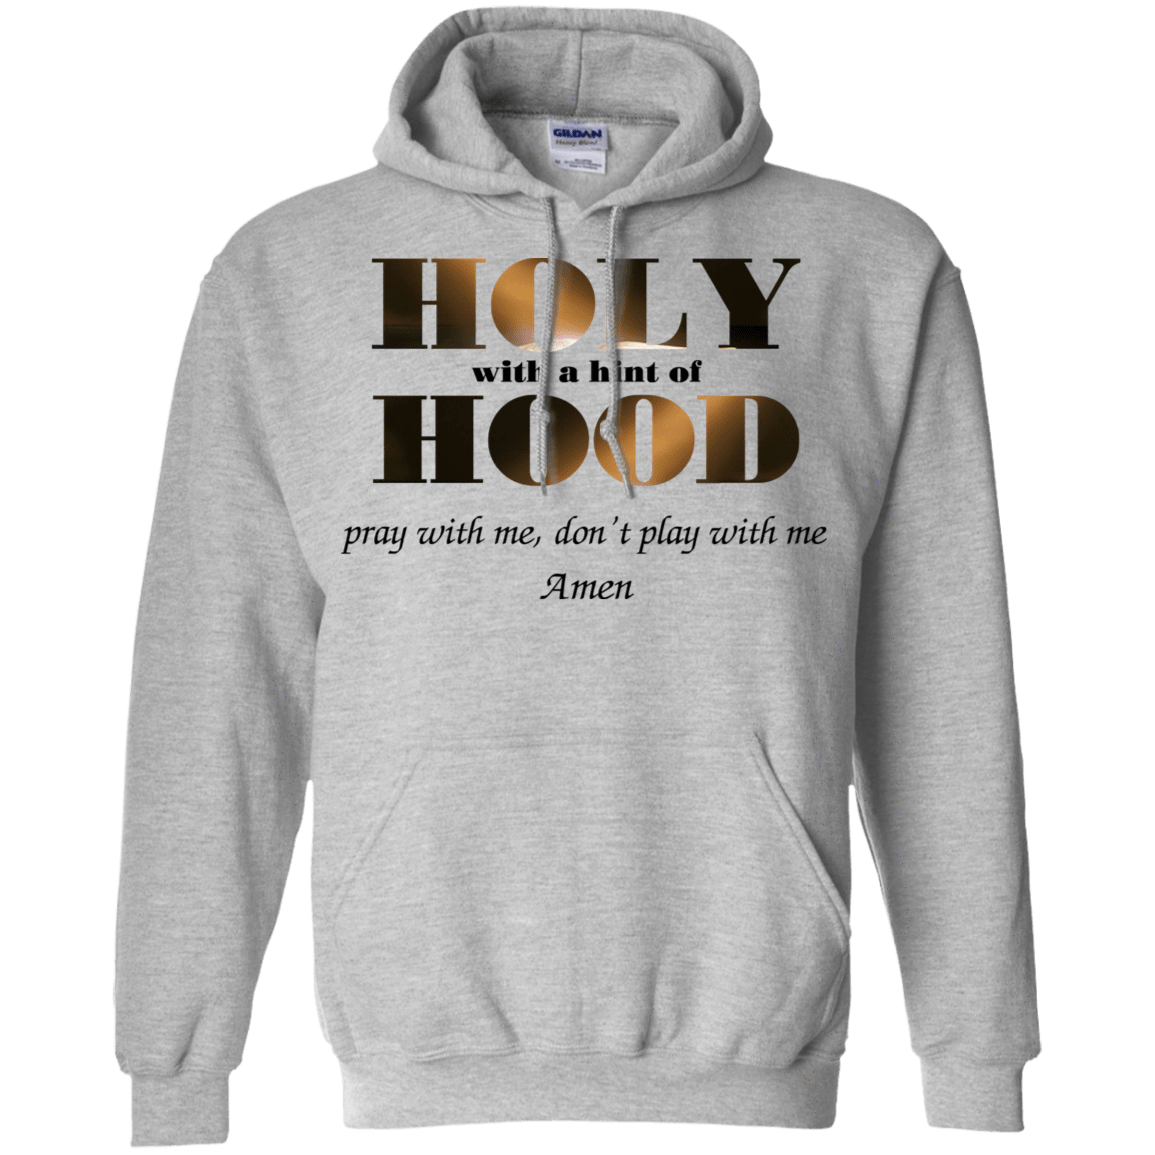 Holy With A Hint Of Hood Pray With Me Don't Play With Me Amen T-Shirts, Hoodie, Tank 541-4741-77675277-23111 - Tee Ript